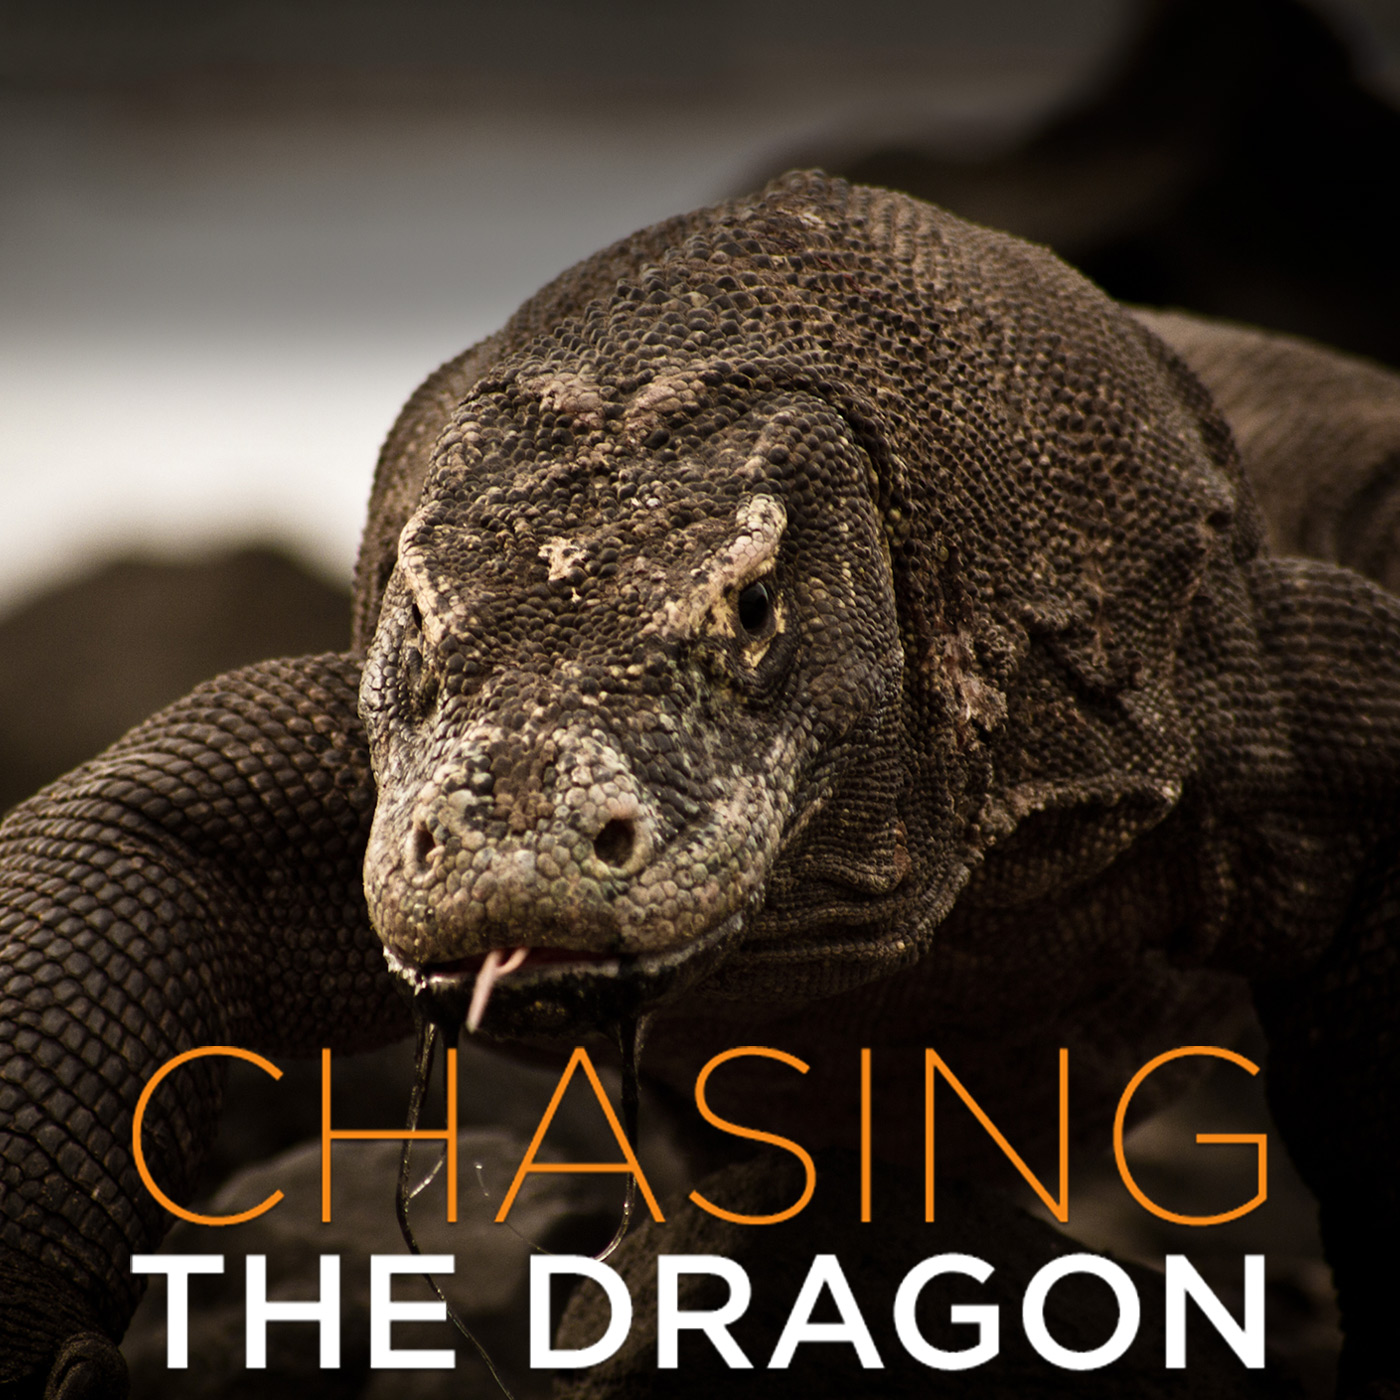 Chasing the Dragon (HD)